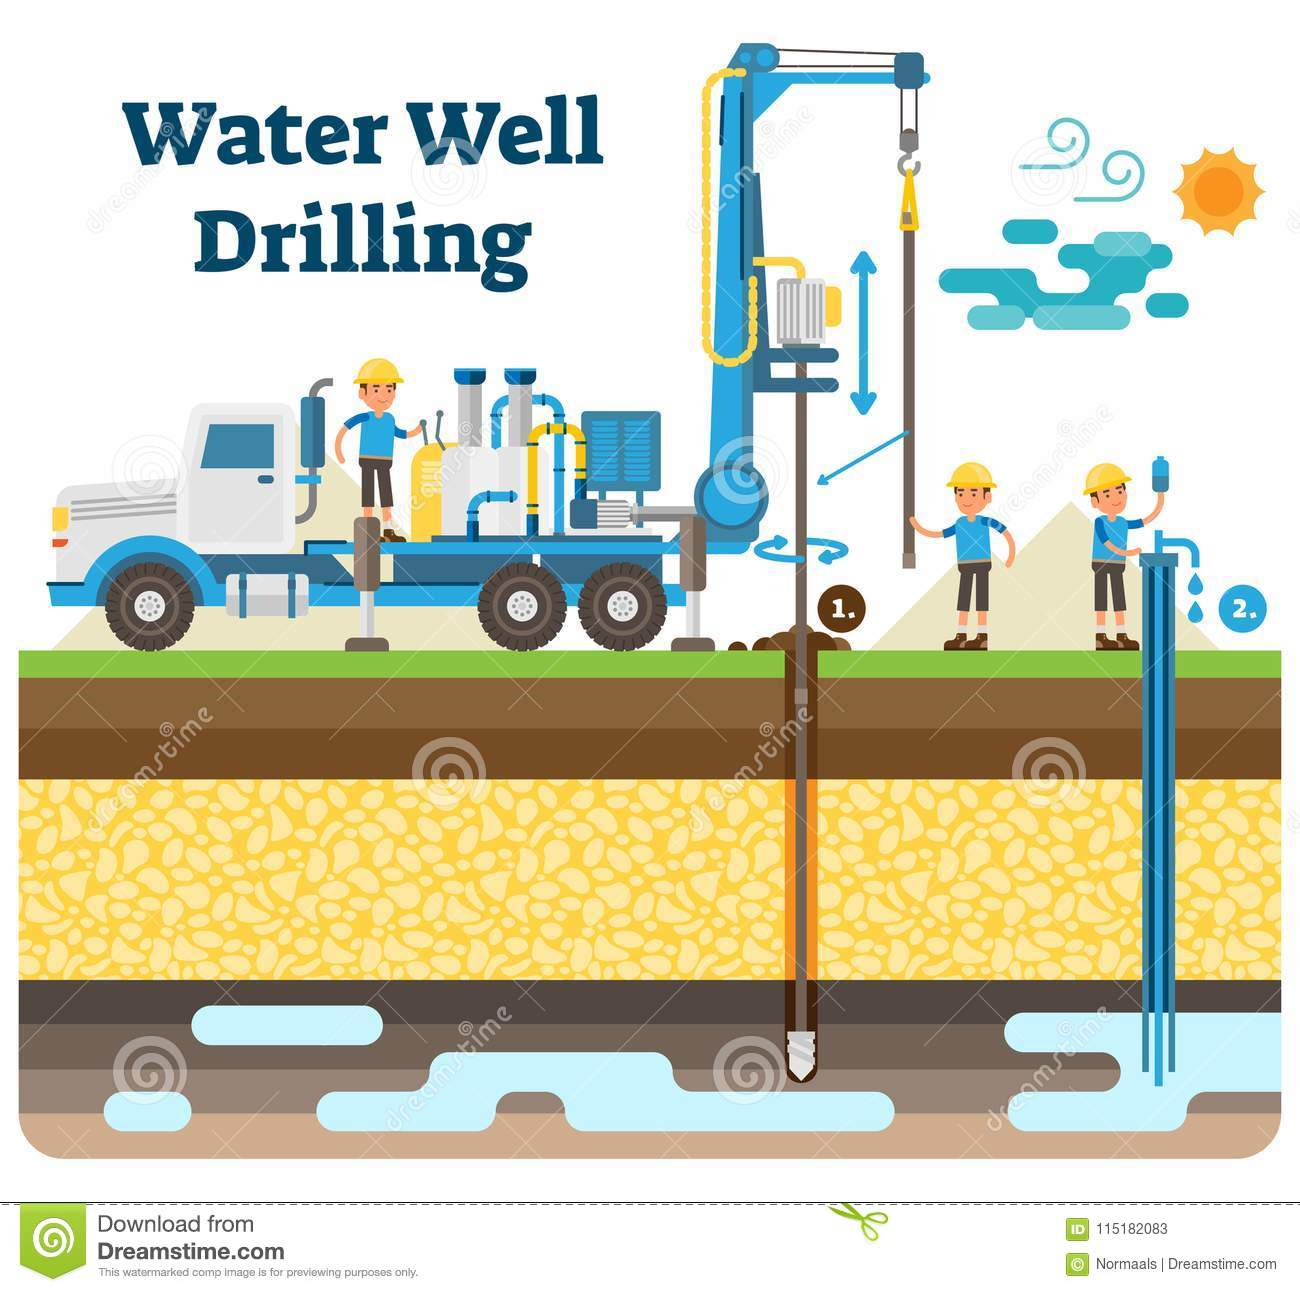 water well drilling vector illustration diagram with drilling process,  machinery equipment and workers